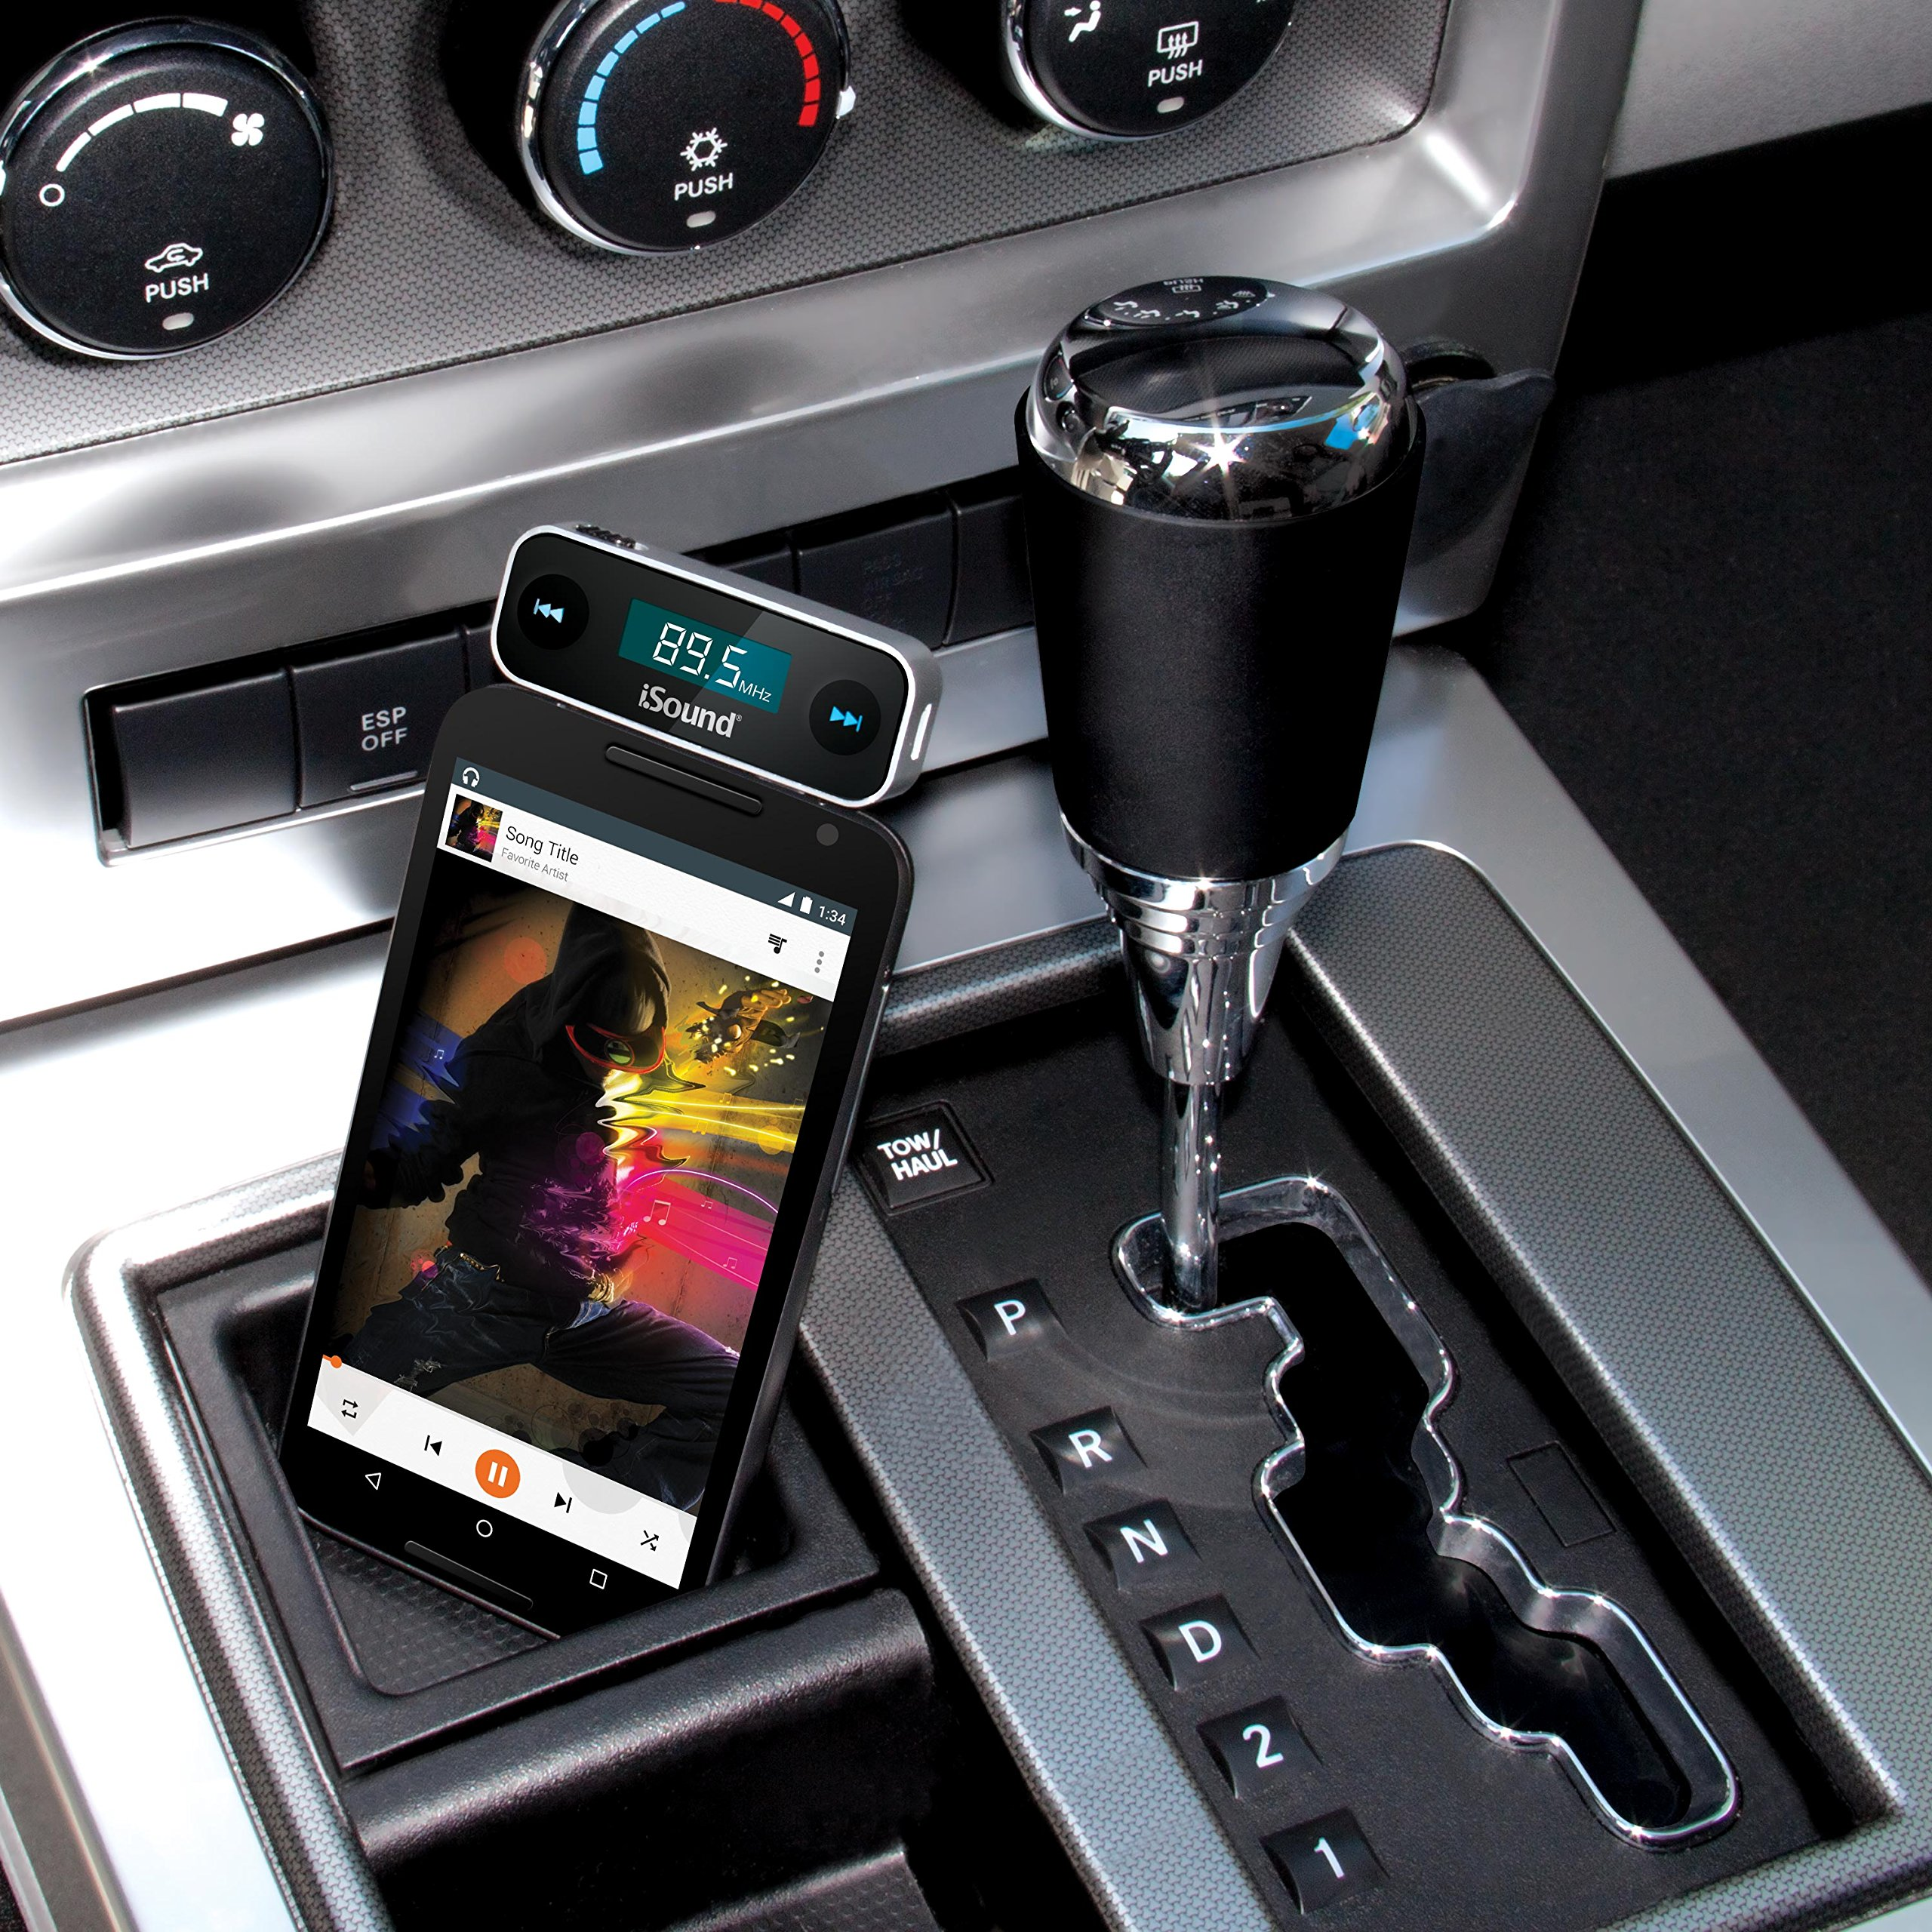 iSound Smart Tune 2 in 1 - Wireless FM Transmitter with Rechargeable Battery & included Car Charger